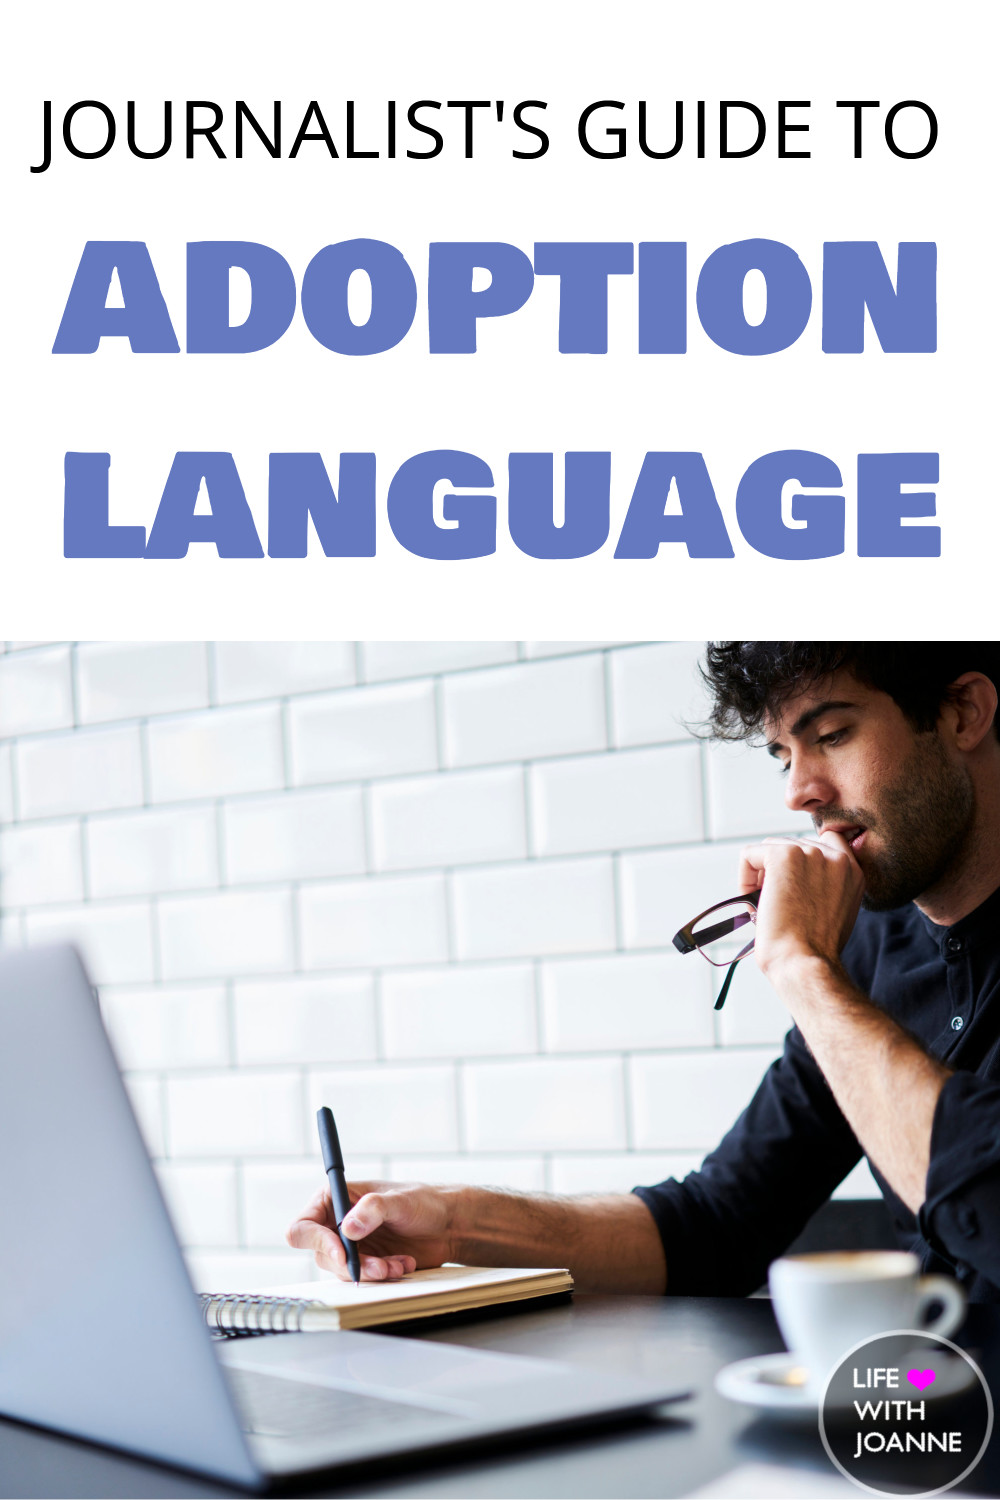 Adoption language